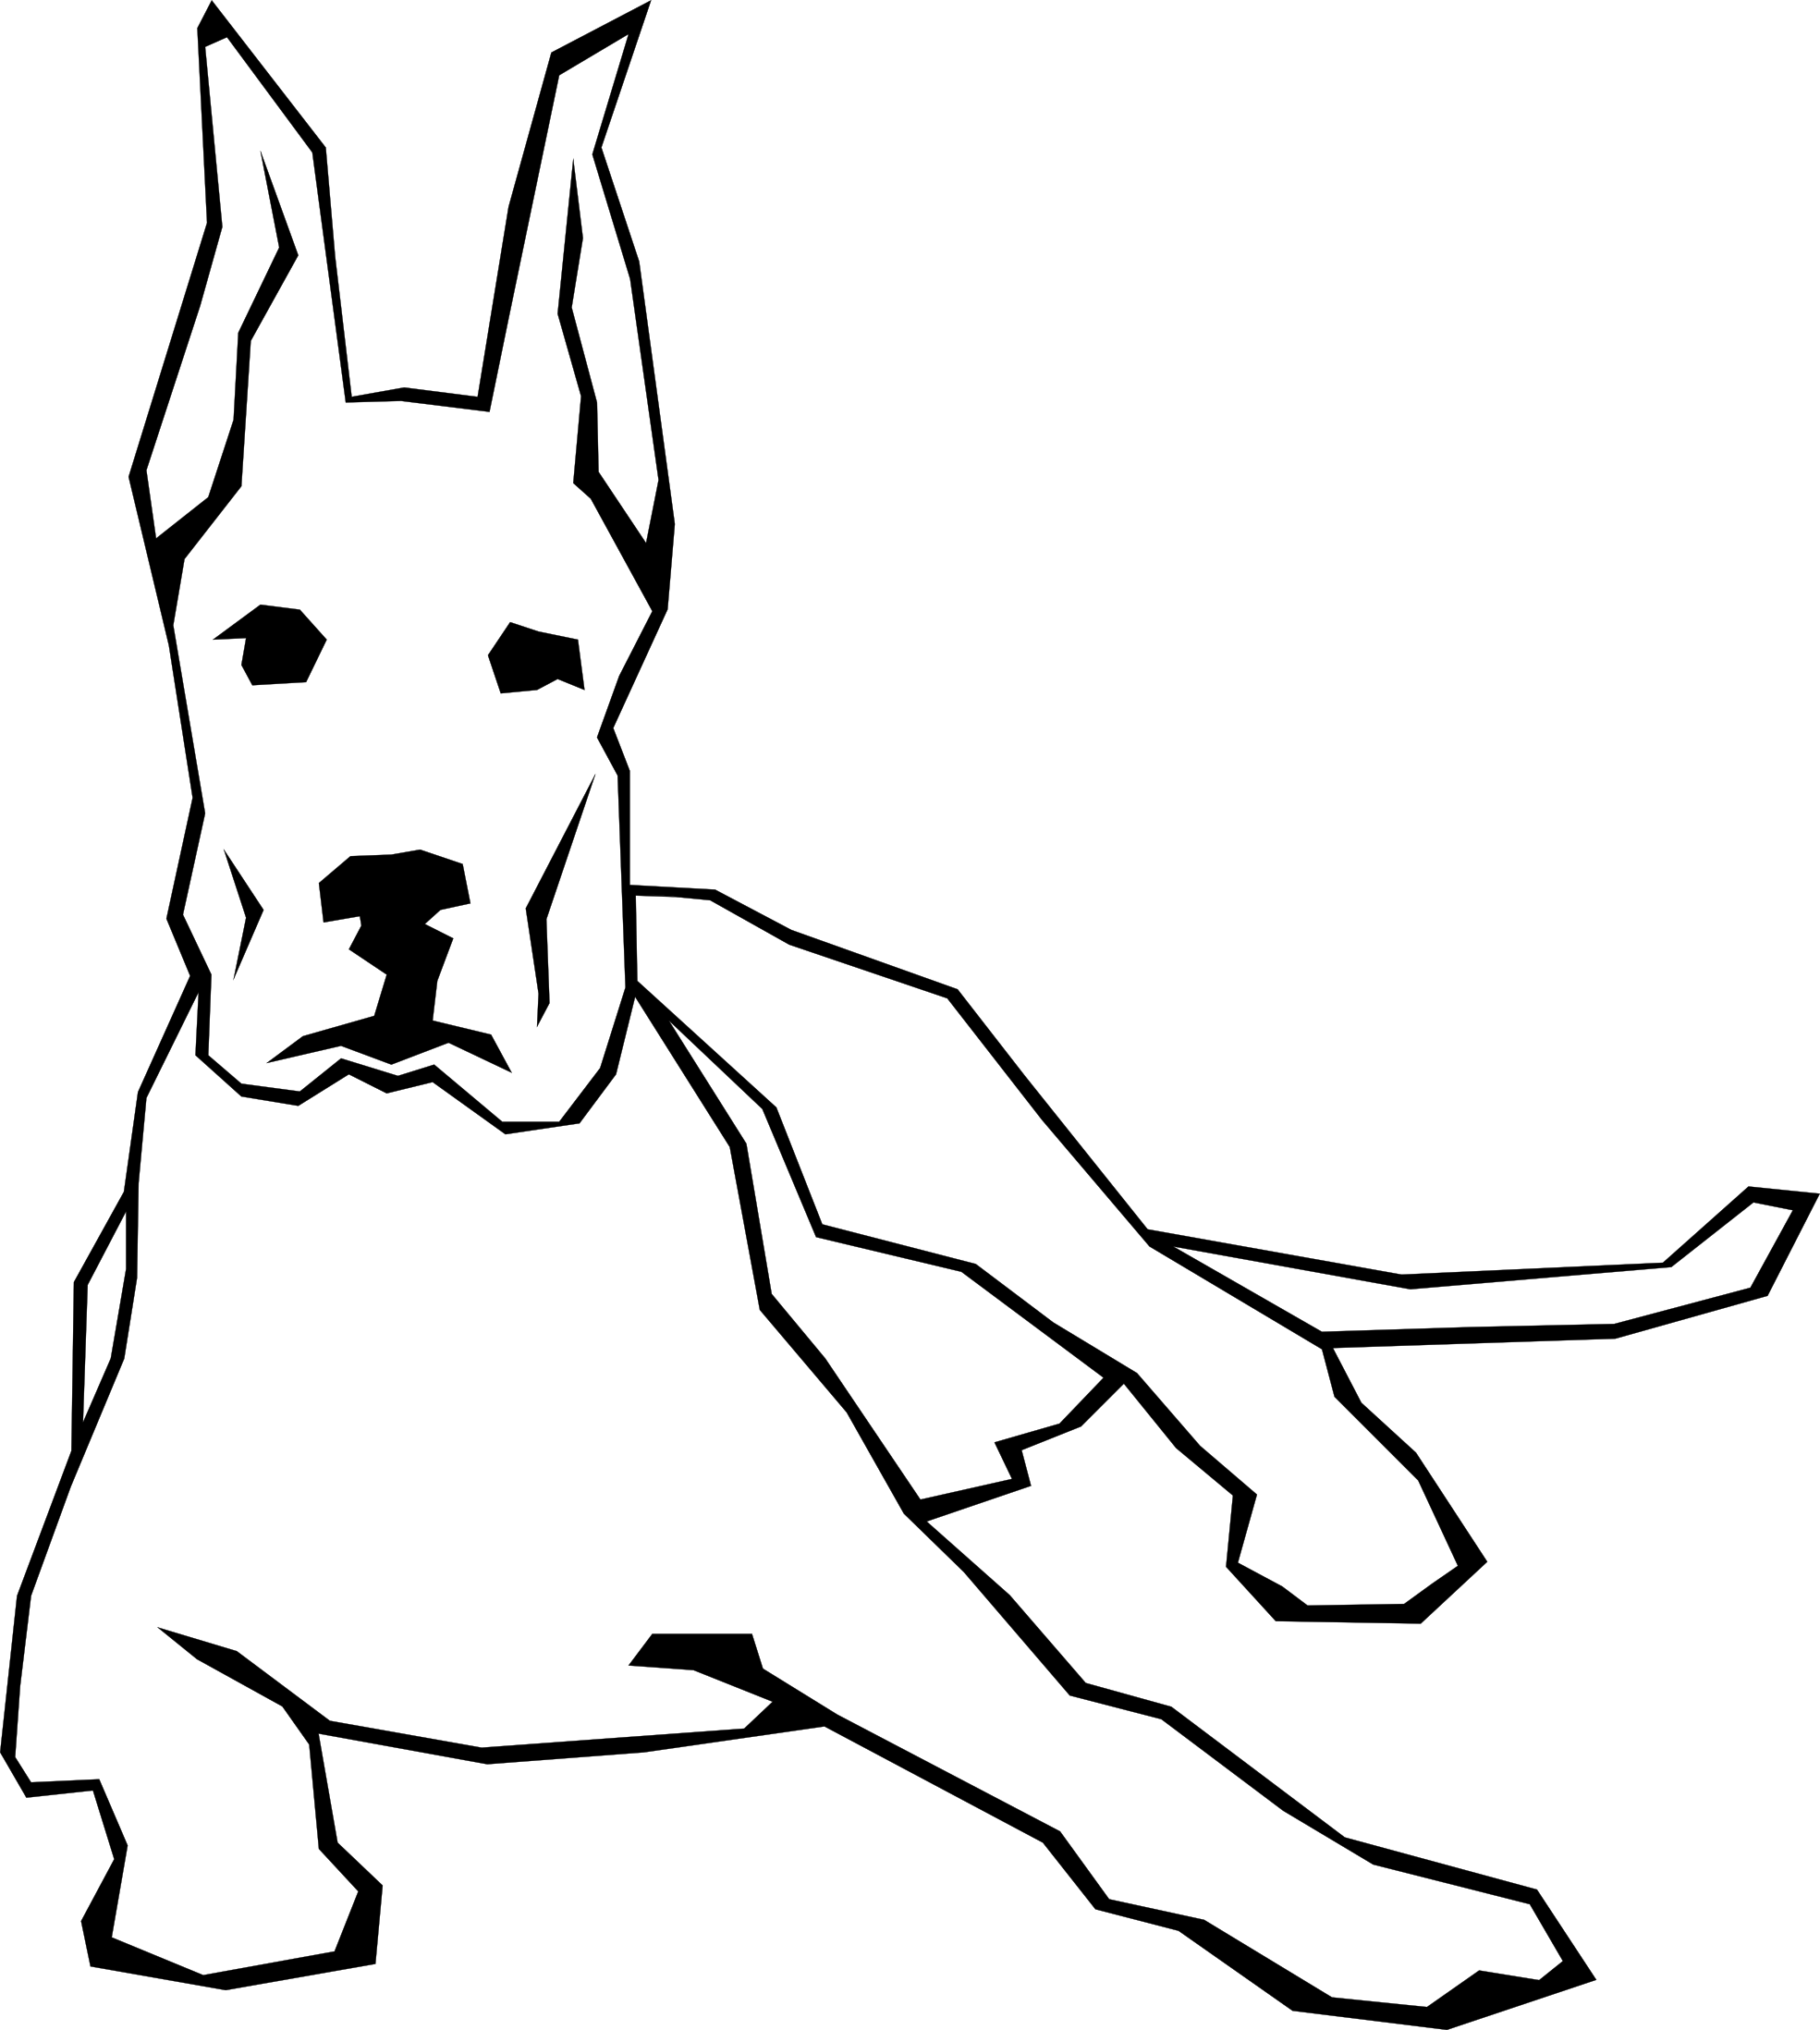 Dogs vector simple. Dog drawing black white